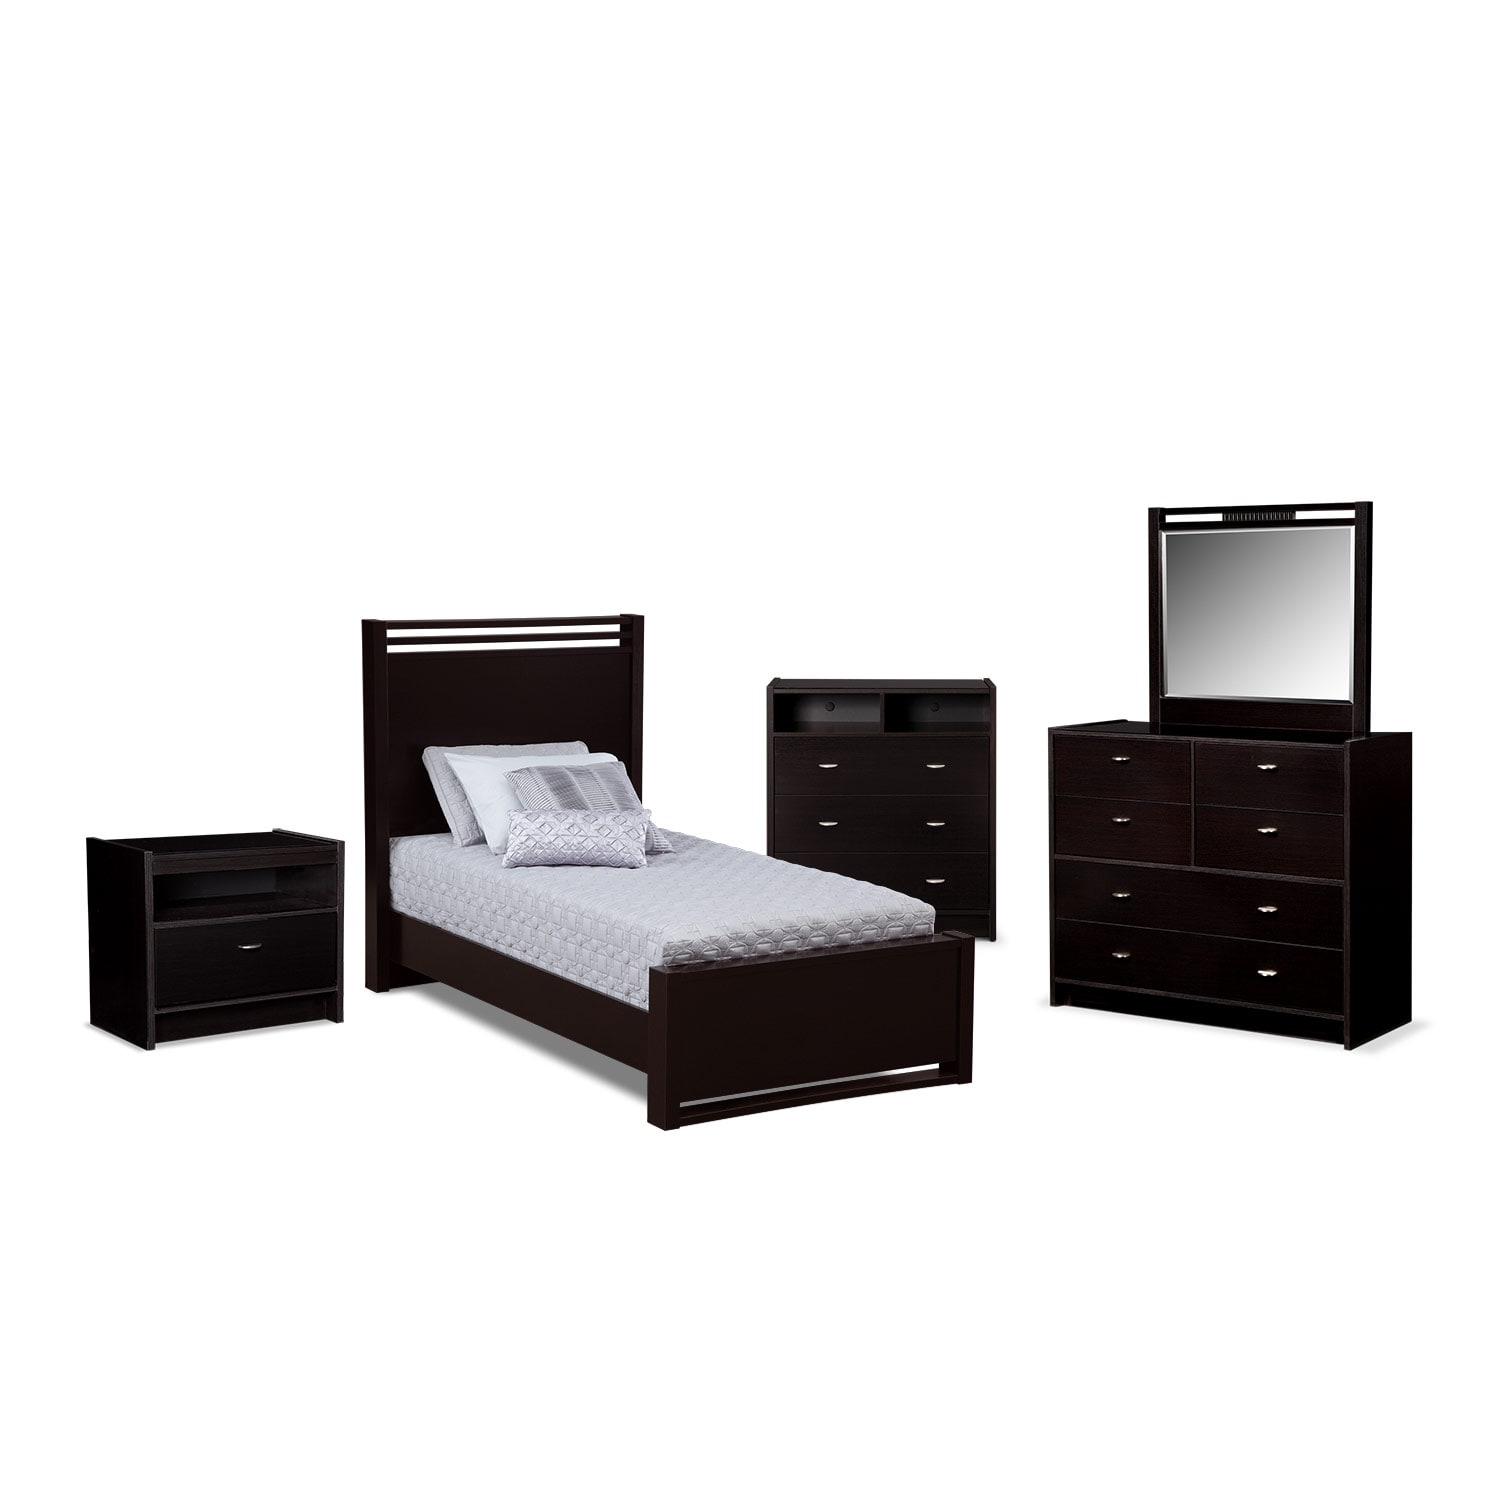 Bally 7-Piece Twin Bedroom Set with Media Chest - Espresso